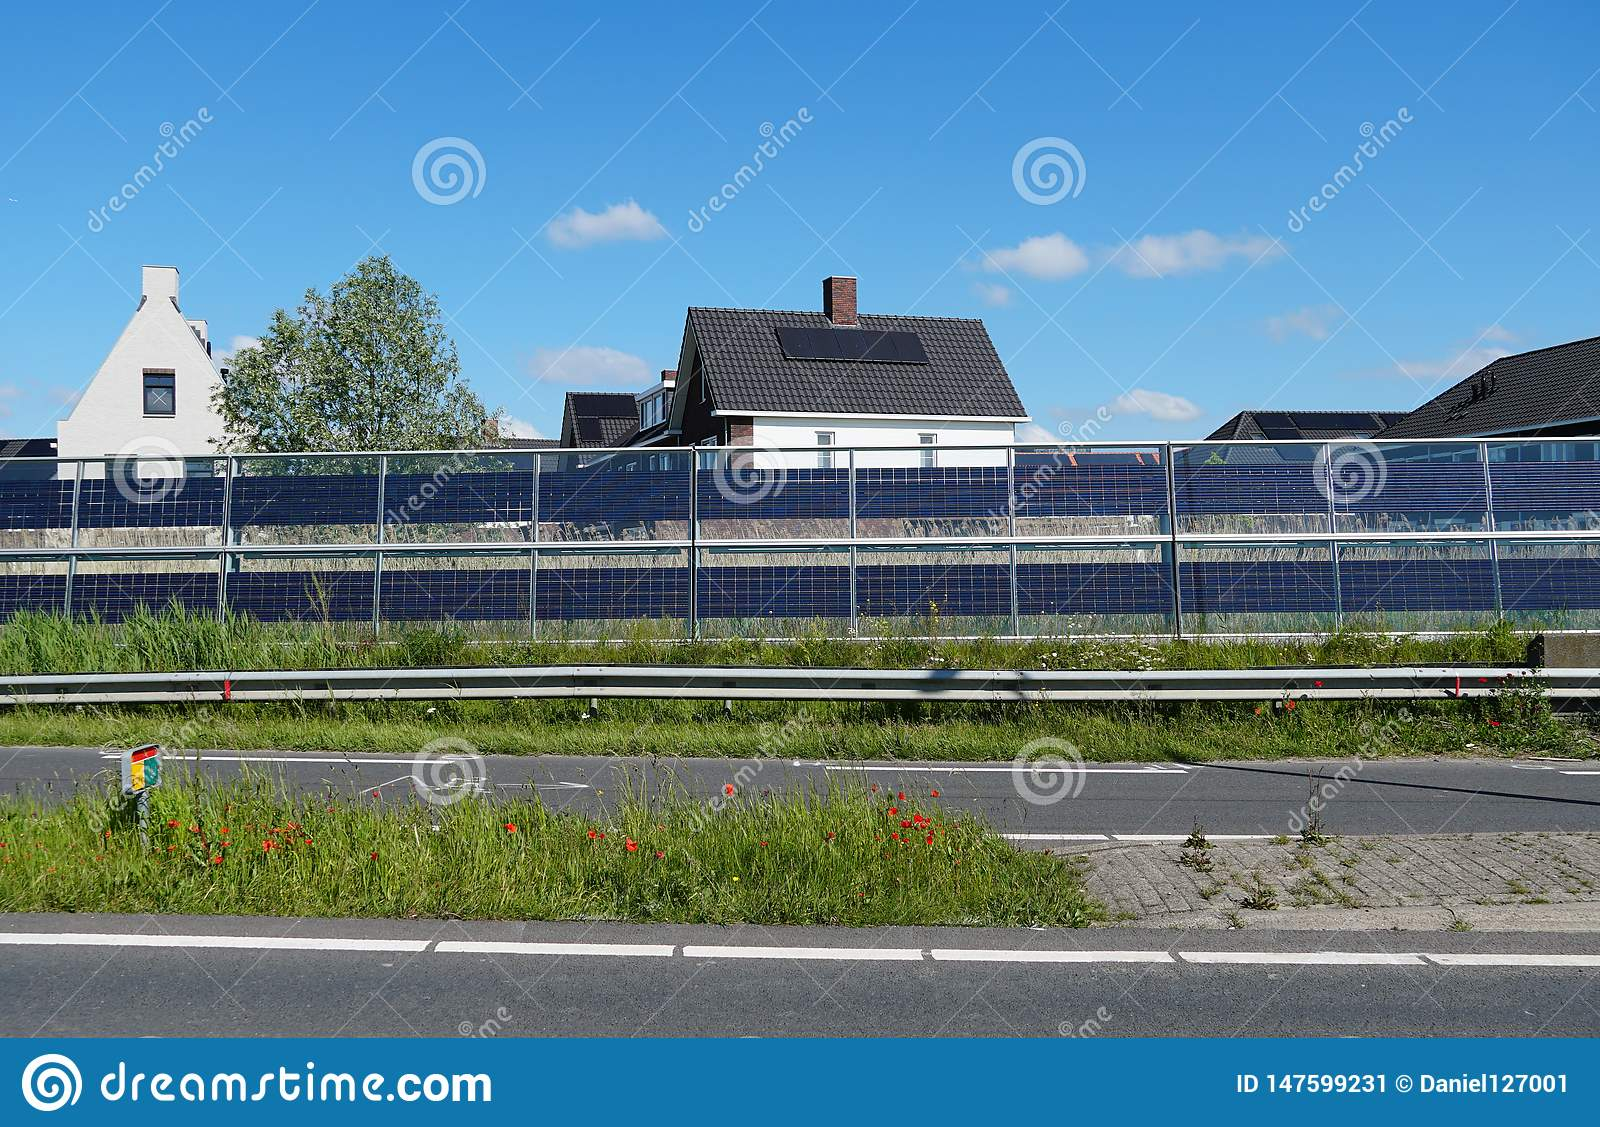 Noise barriers with integrated solar panels